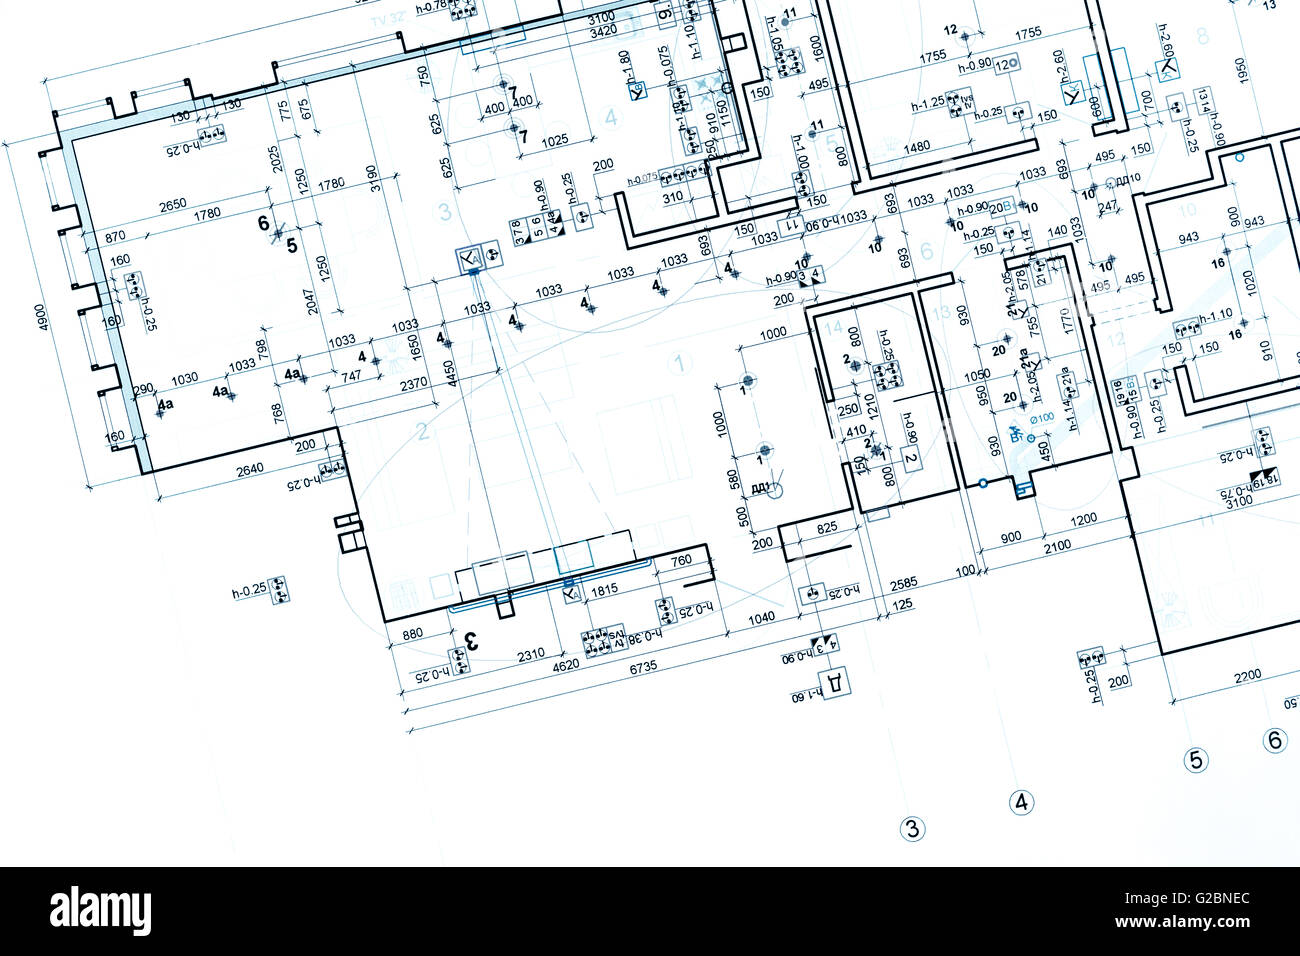 Blueprint floor plans architectural drawings construction stock blueprint floor plans architectural drawings construction background malvernweather Gallery